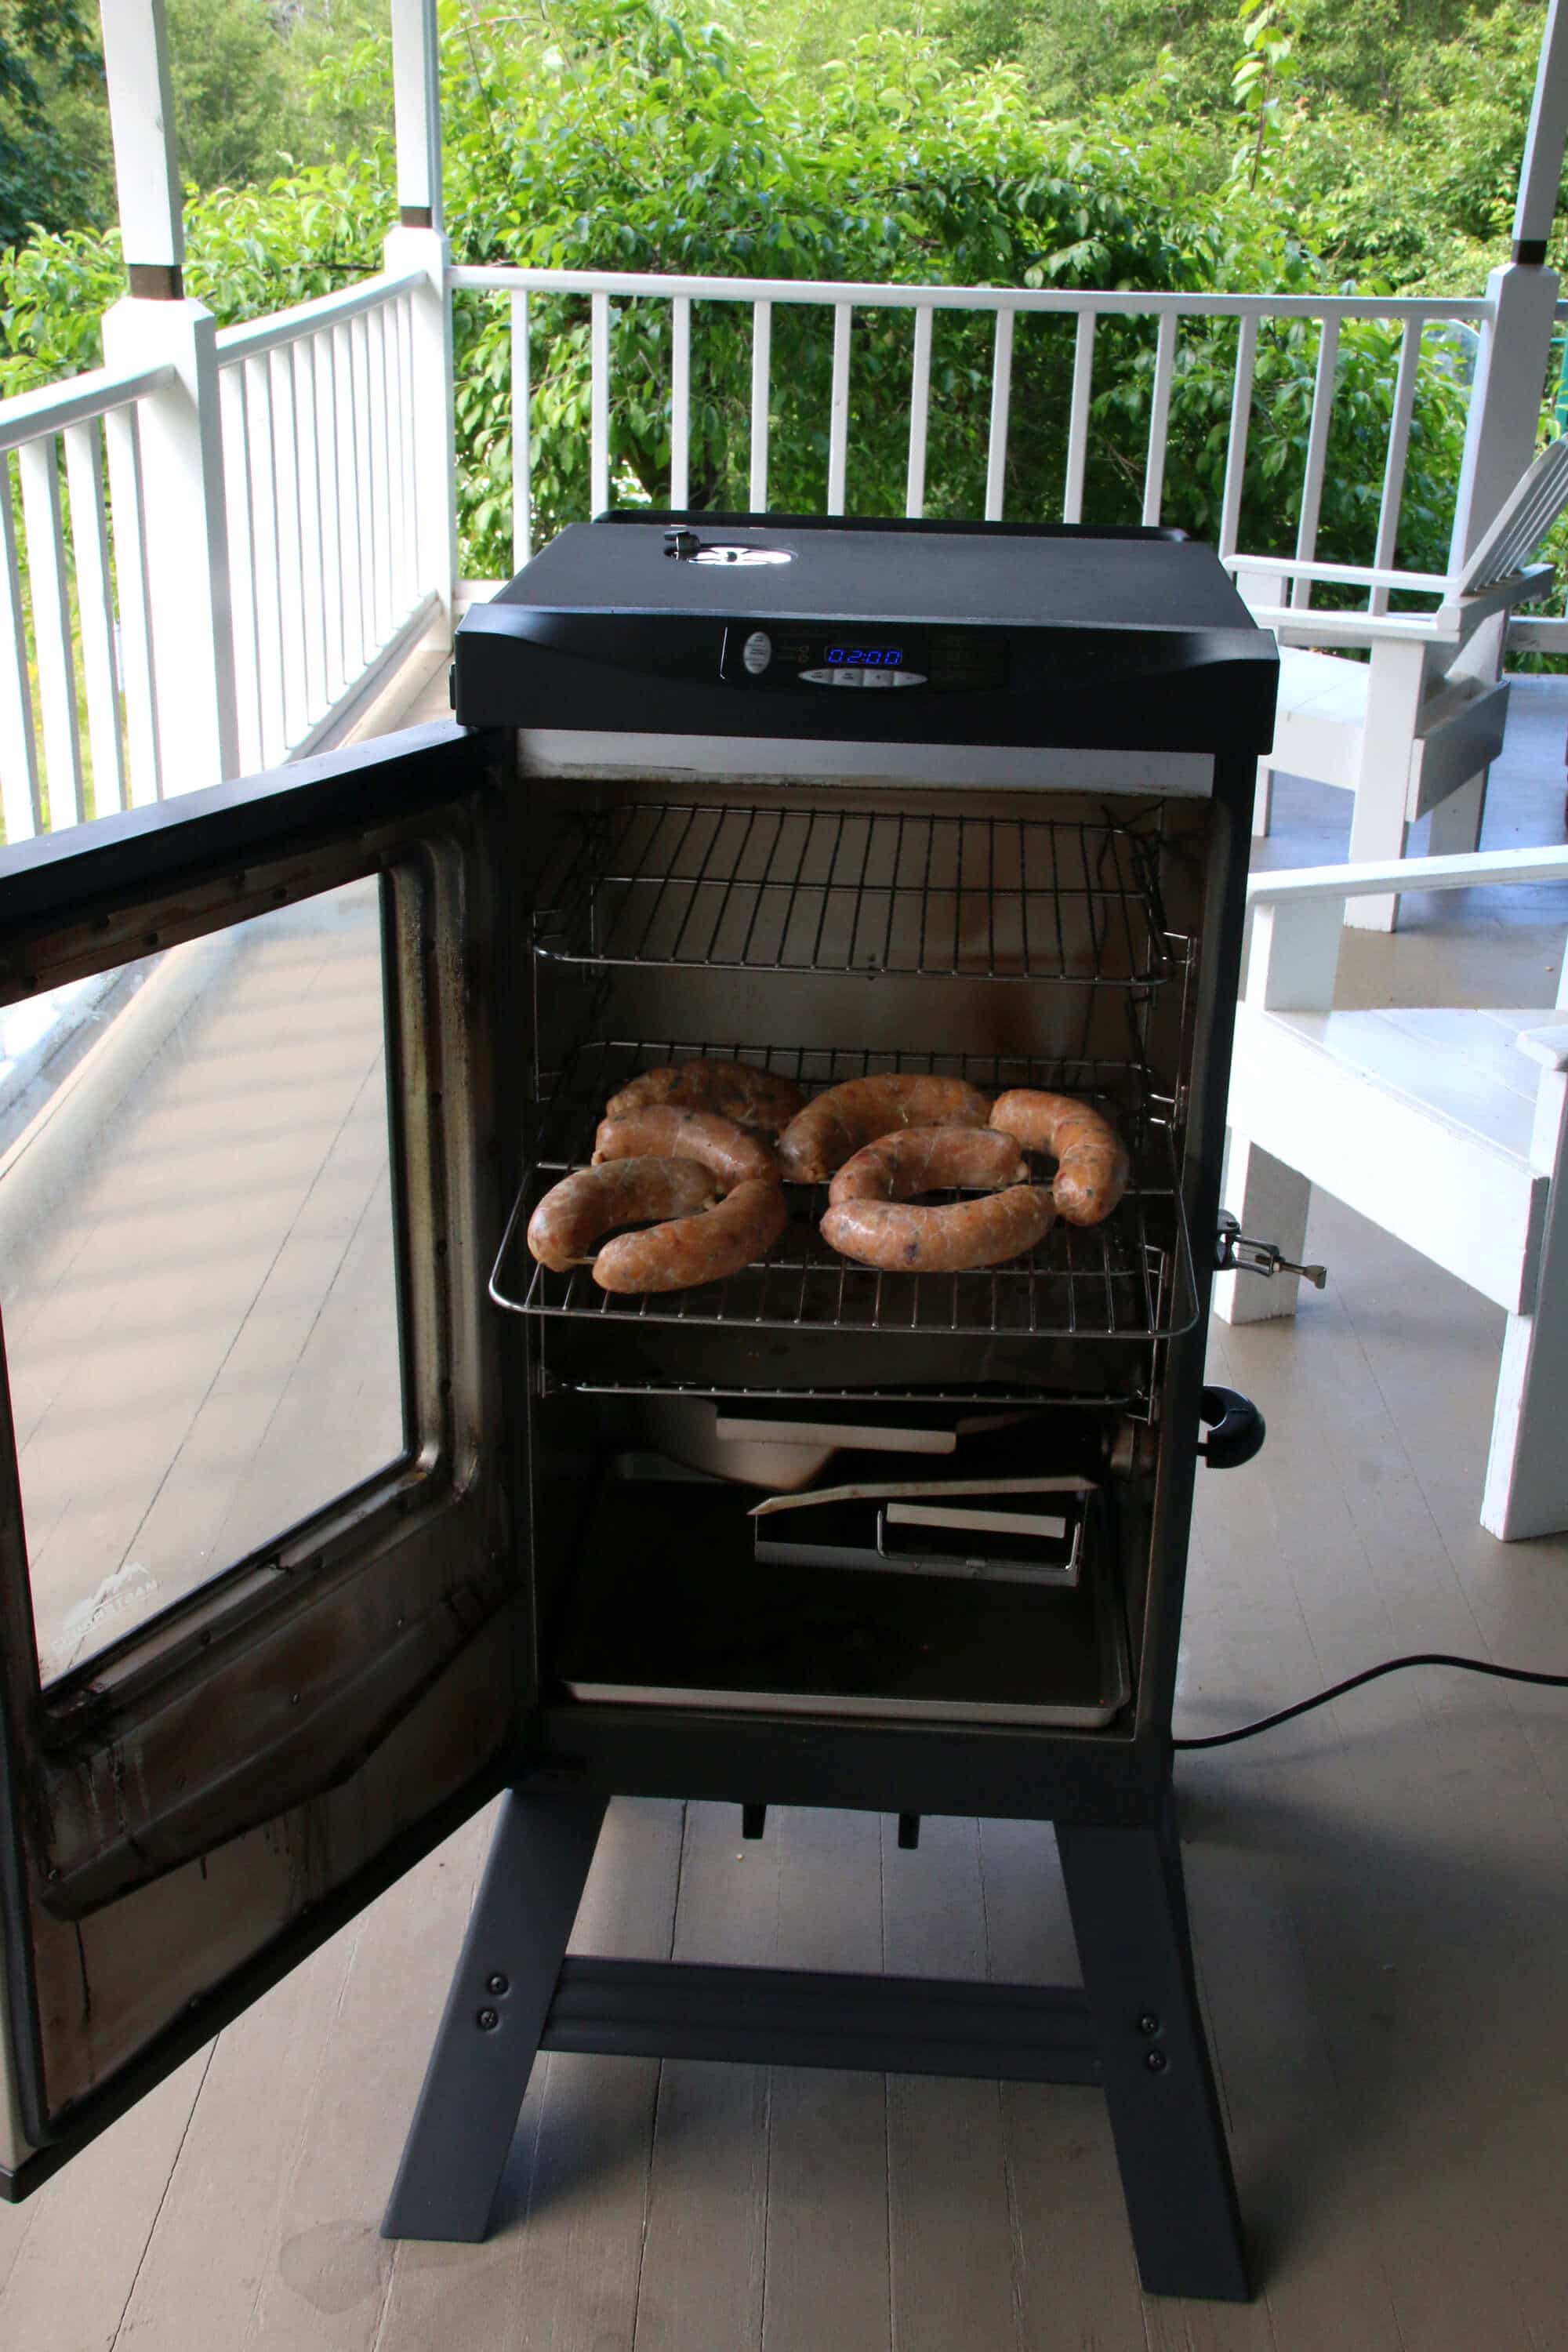 Masterbuilt Digital Electric Smoker Review Giveaway The - 8 diy smokers for enjoying barbeques